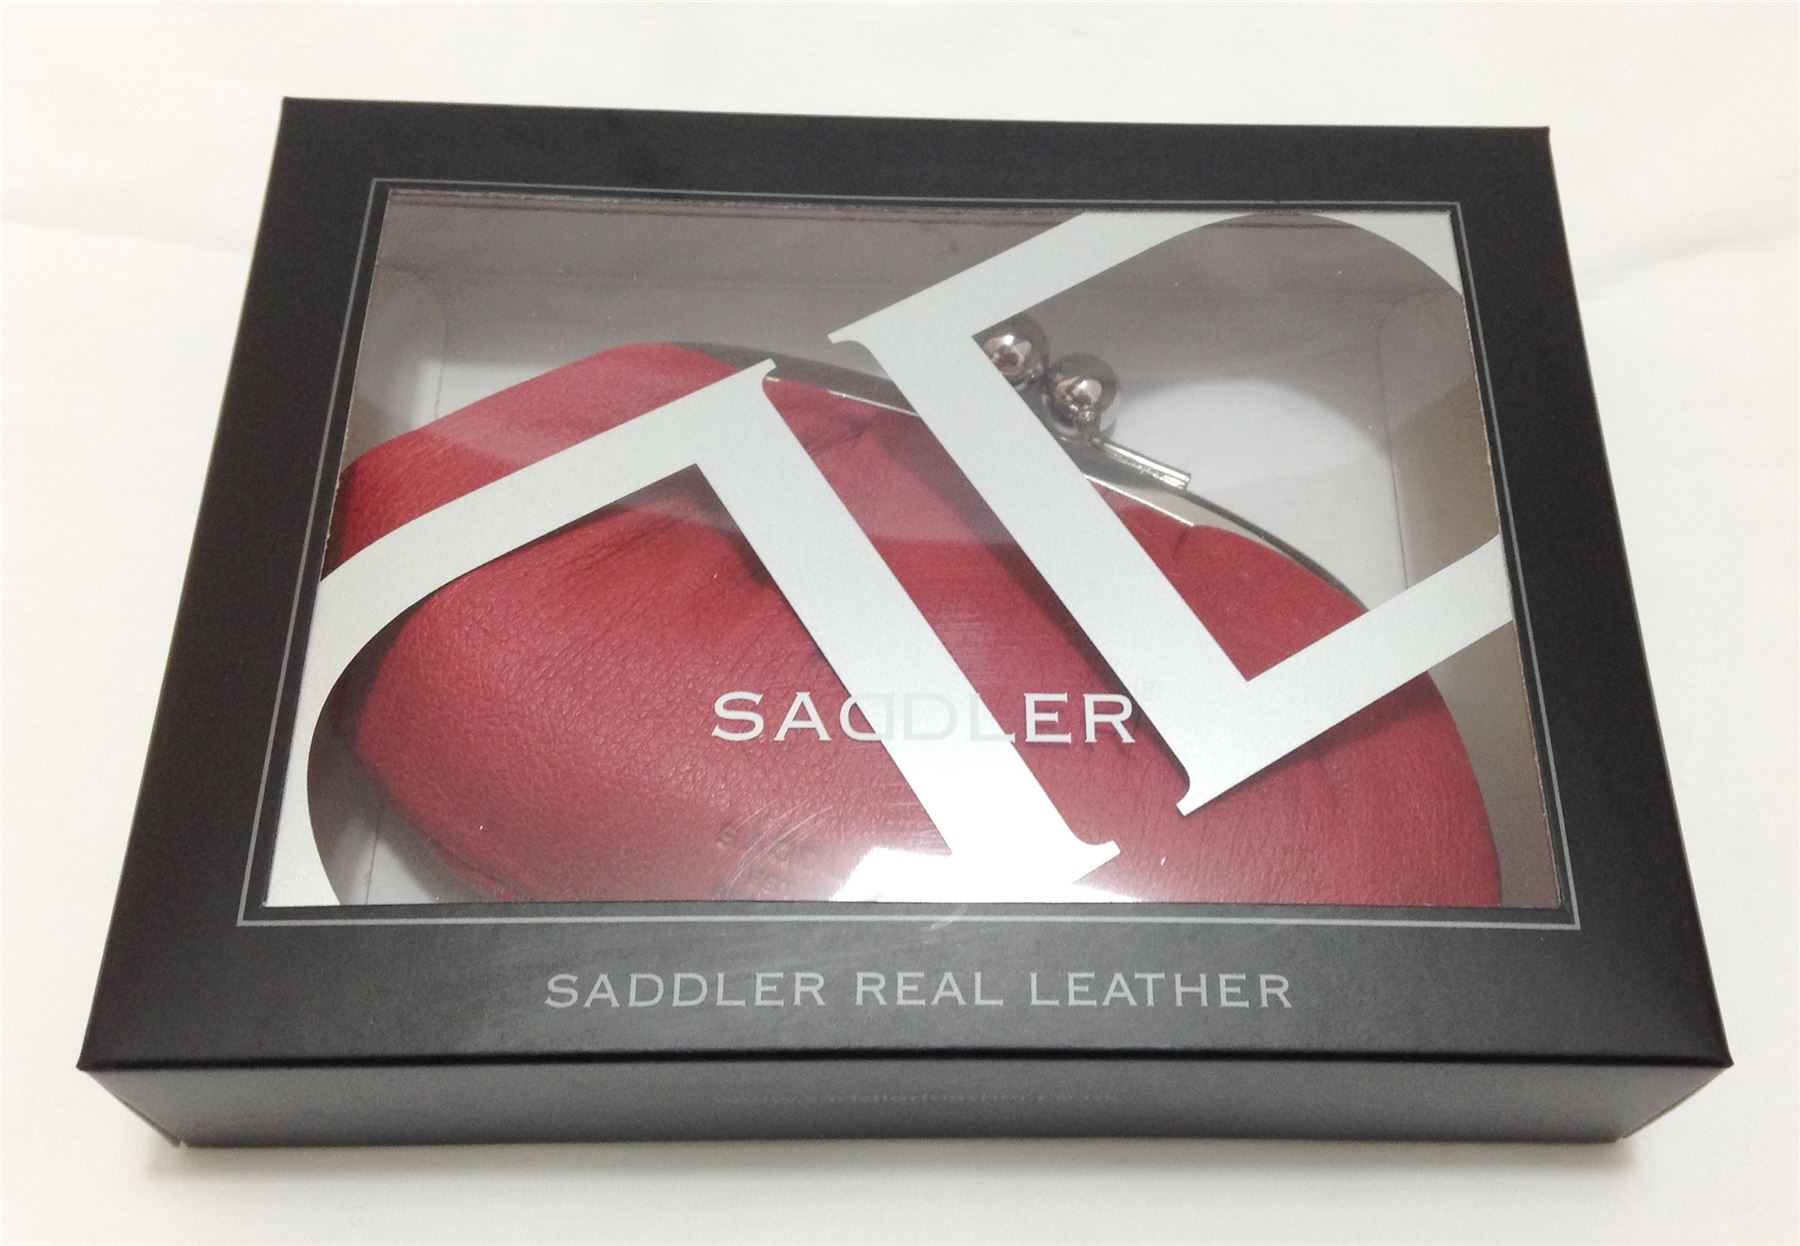 Saddler-Leather-Ball-Clasp-Coin-Purse-2166